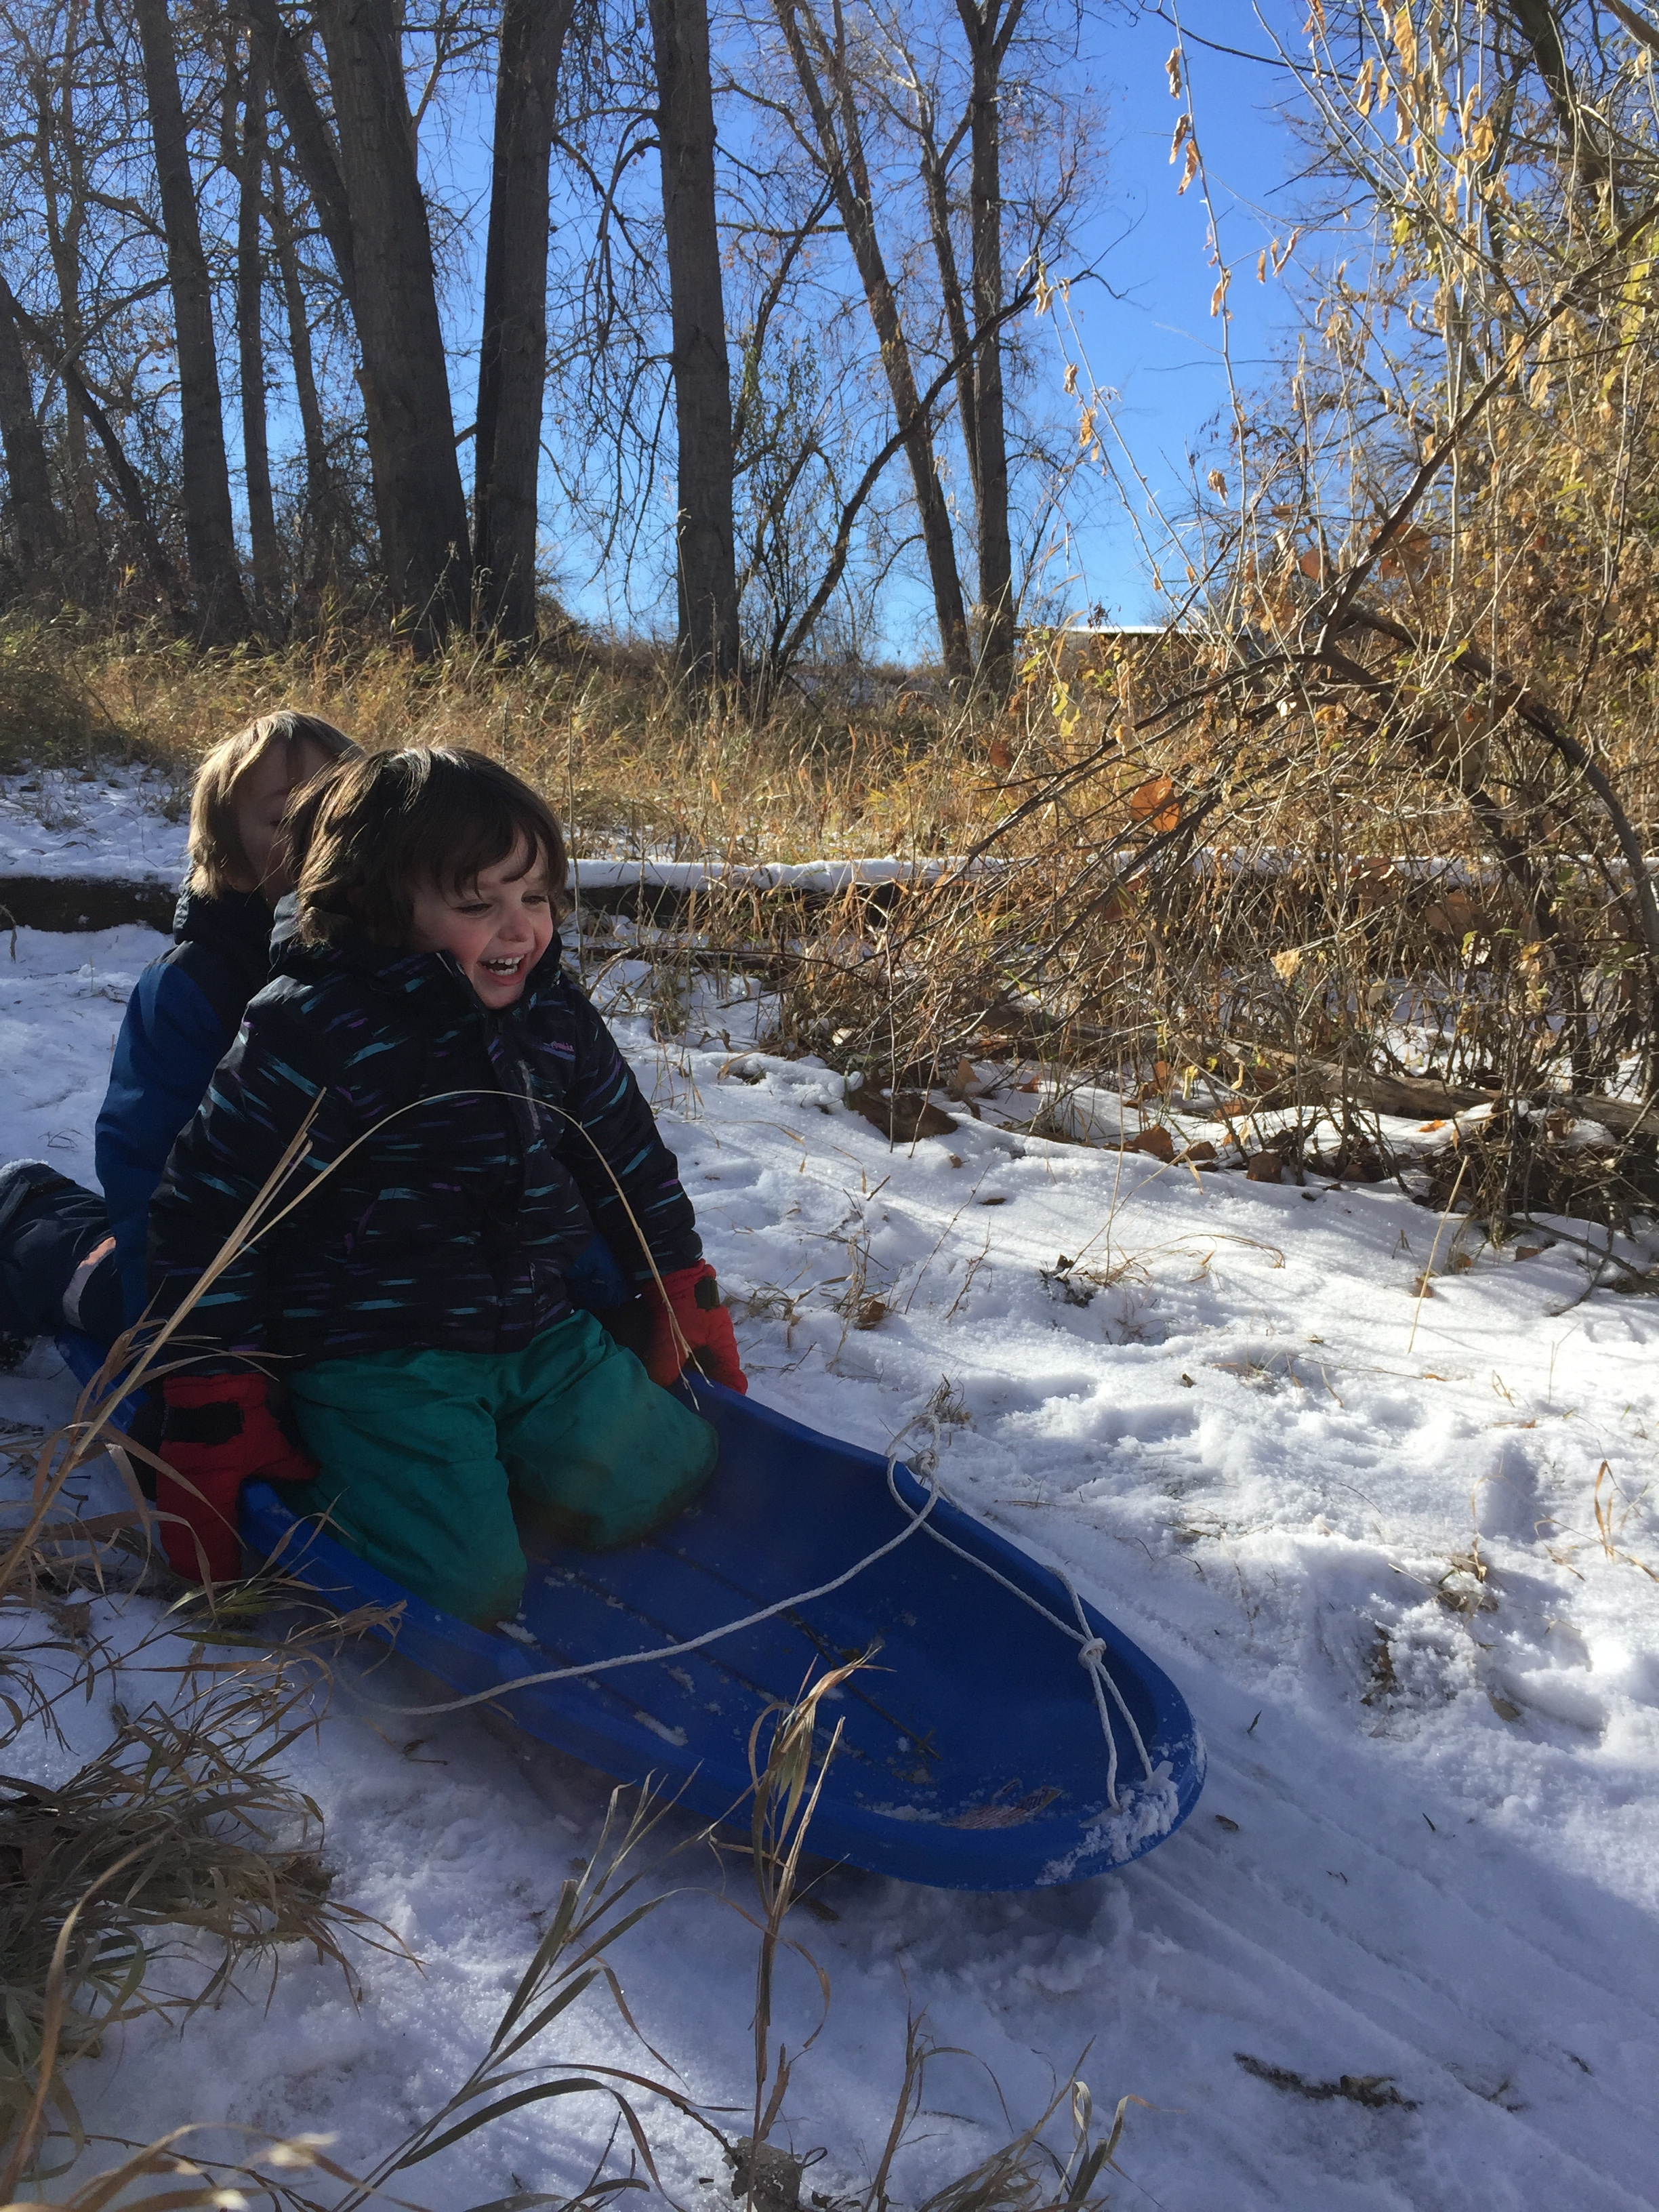 Such joy! Sledding is not only fun and great exercise, but it also builds kids' group communication skills, resilience, and invites creativity.